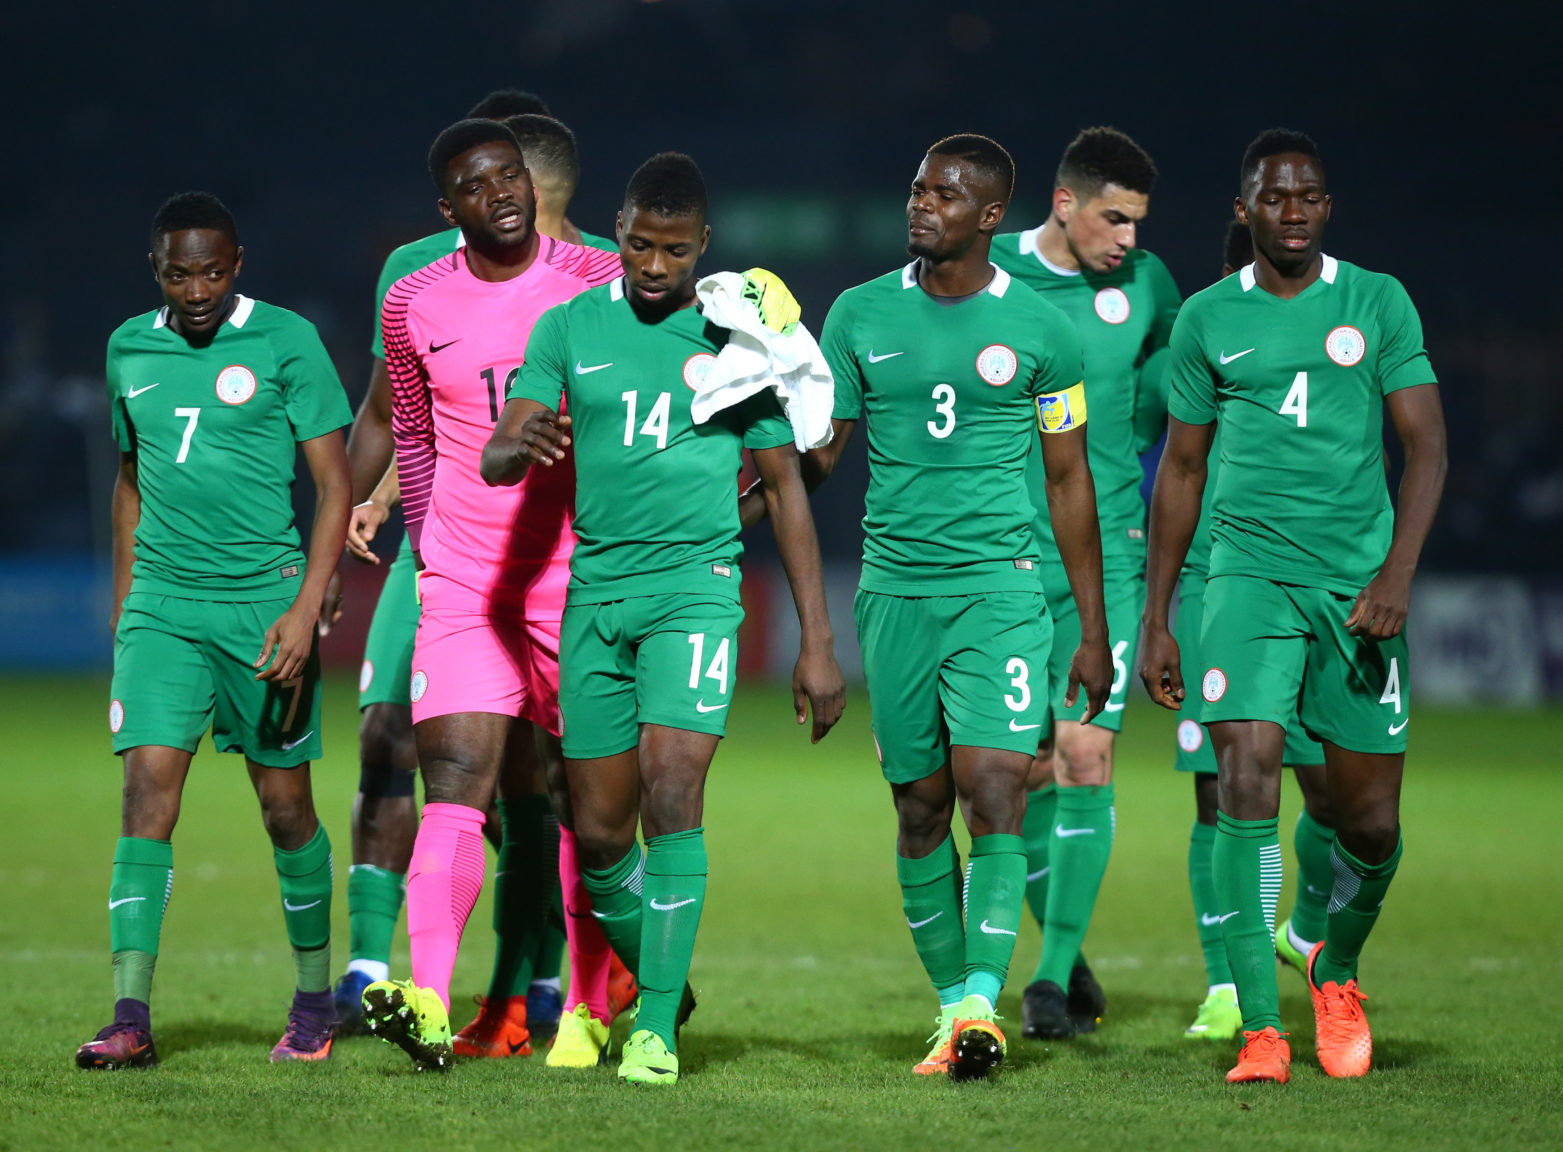 AFCON qualifier: South Africa's Bafana Bafana shock Super Eagles in Uyo